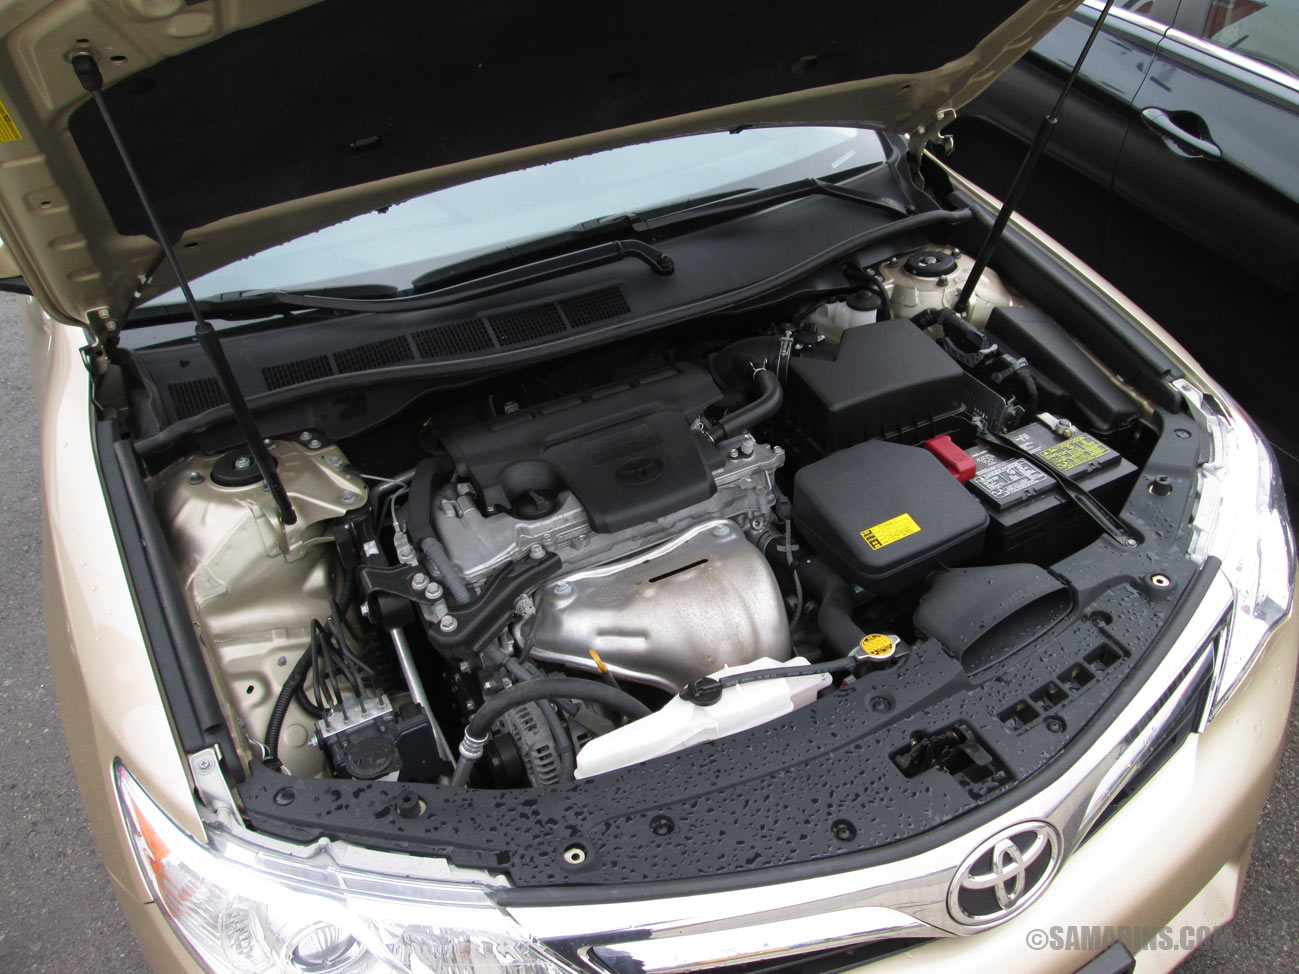 Toyota Camry 2012-2014: problems and fixes, fuel economy